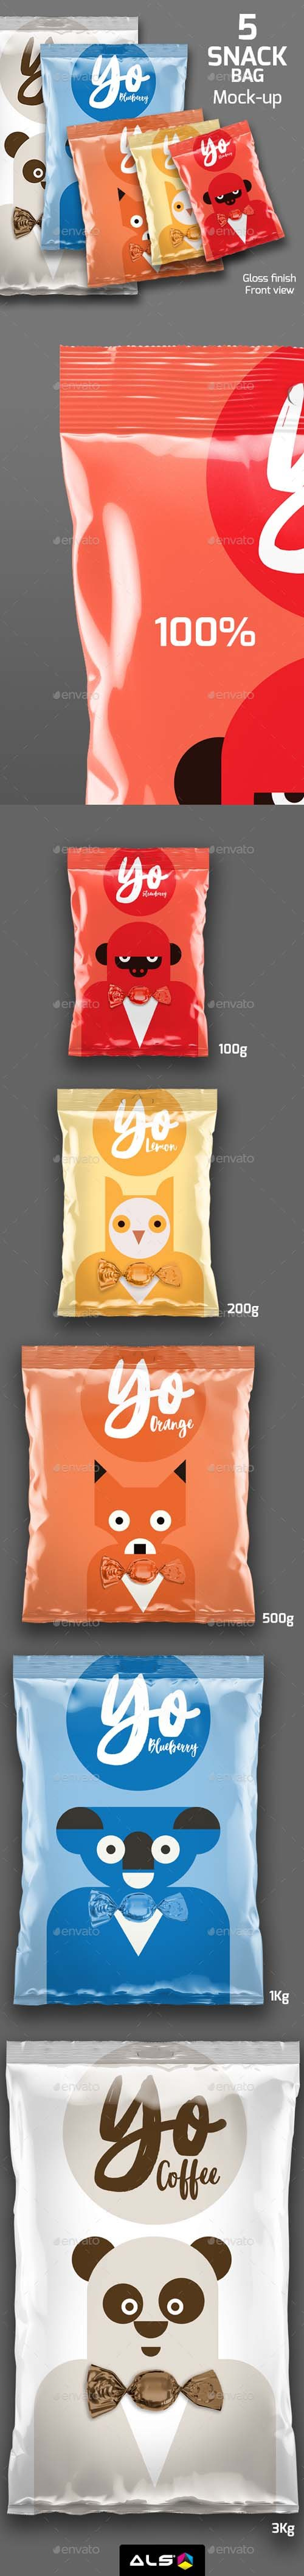 5 Snack Bags Mock-up 19747598